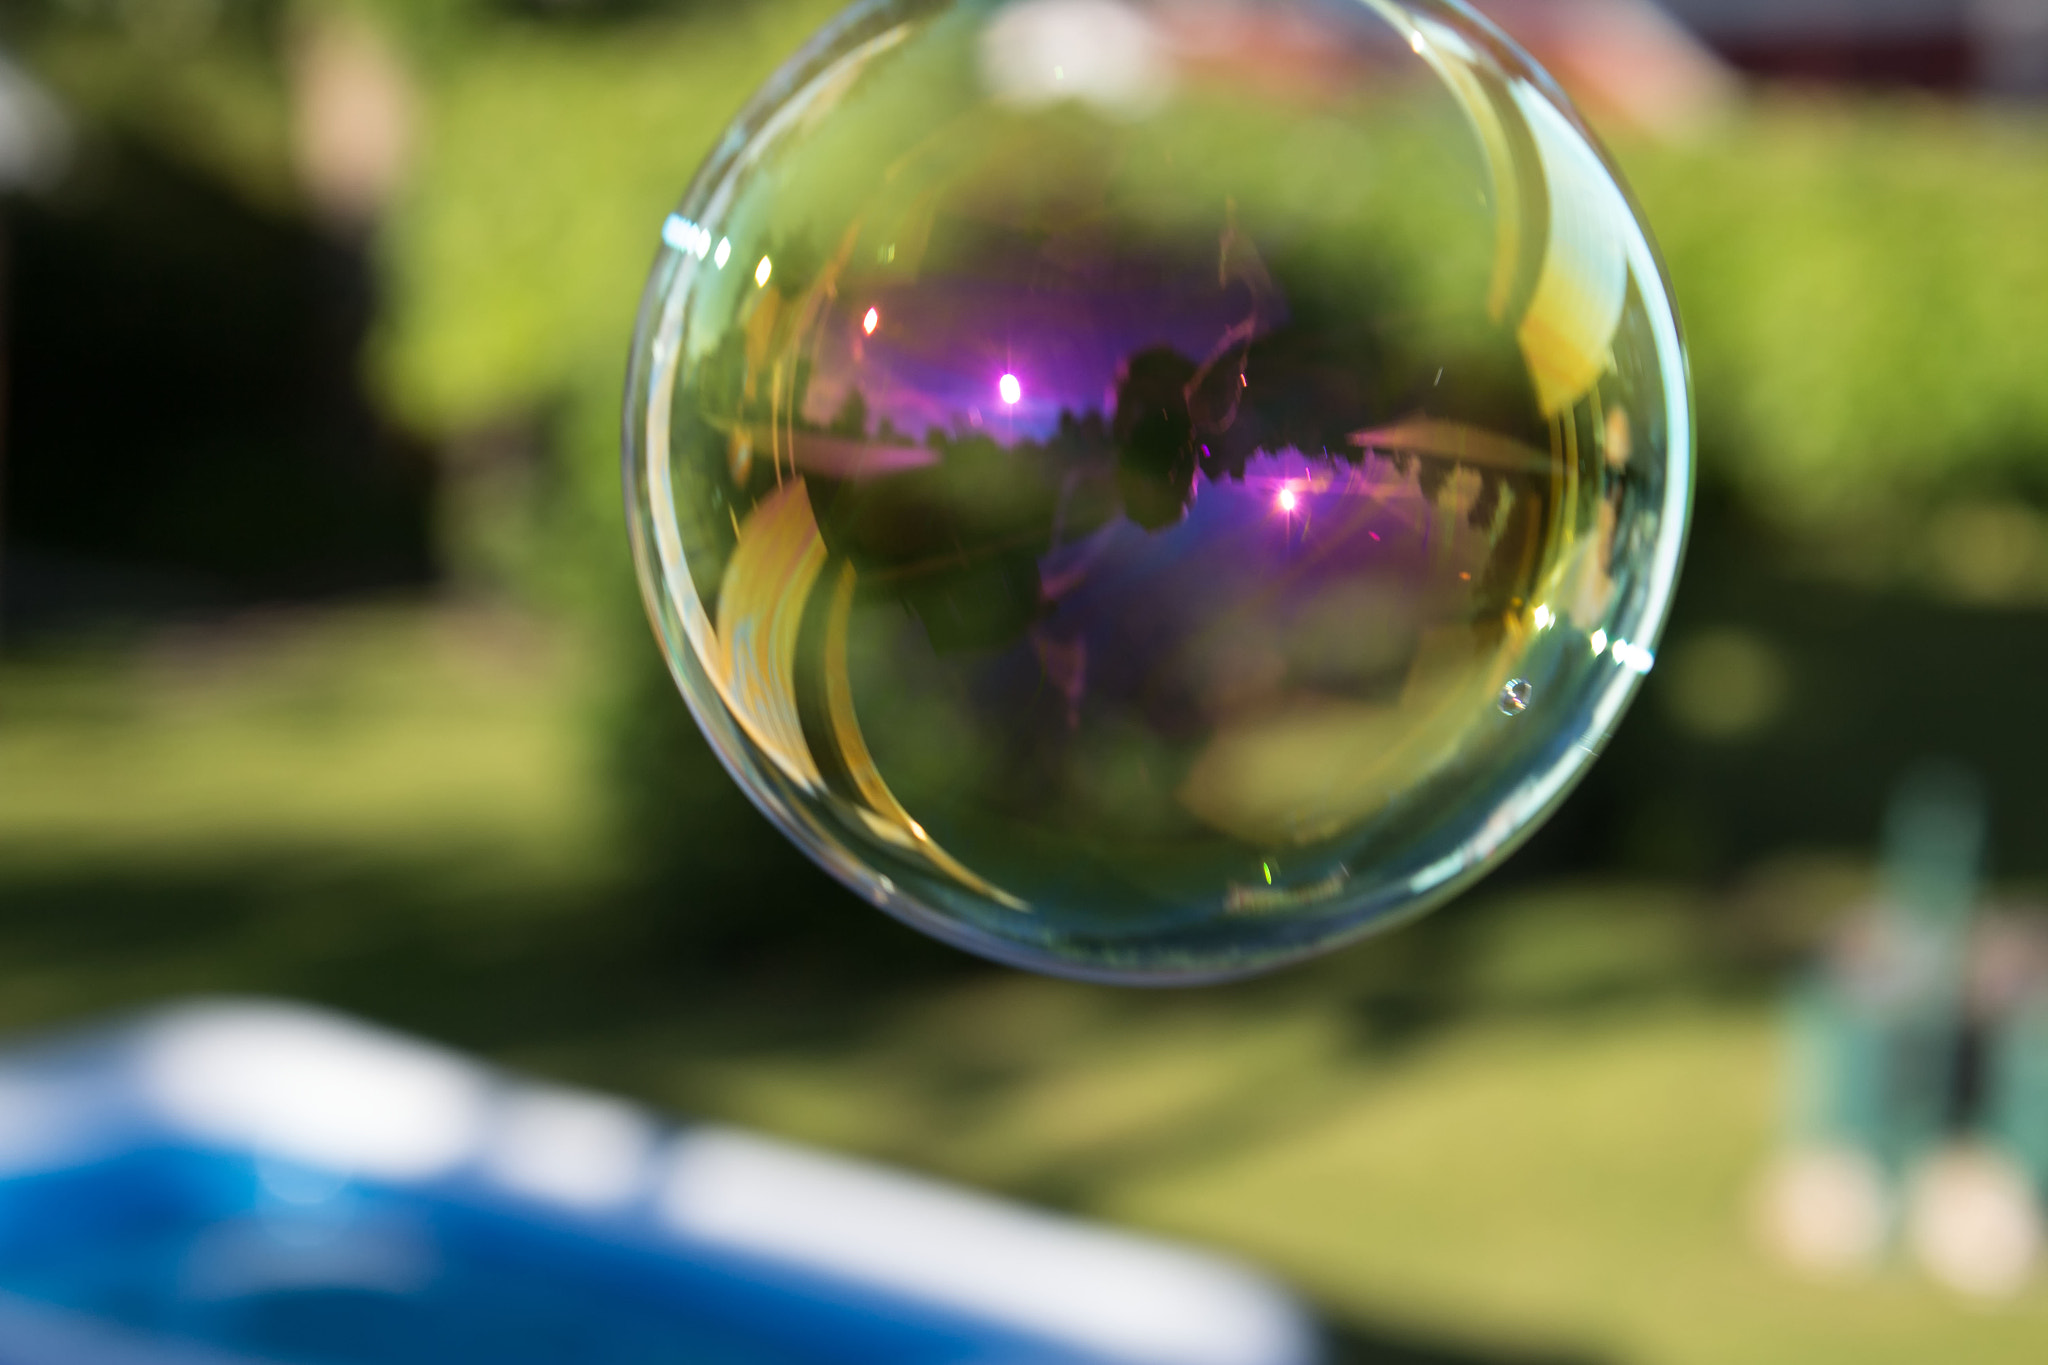 Photograph Bubble.  by Billy Floberg on 500px